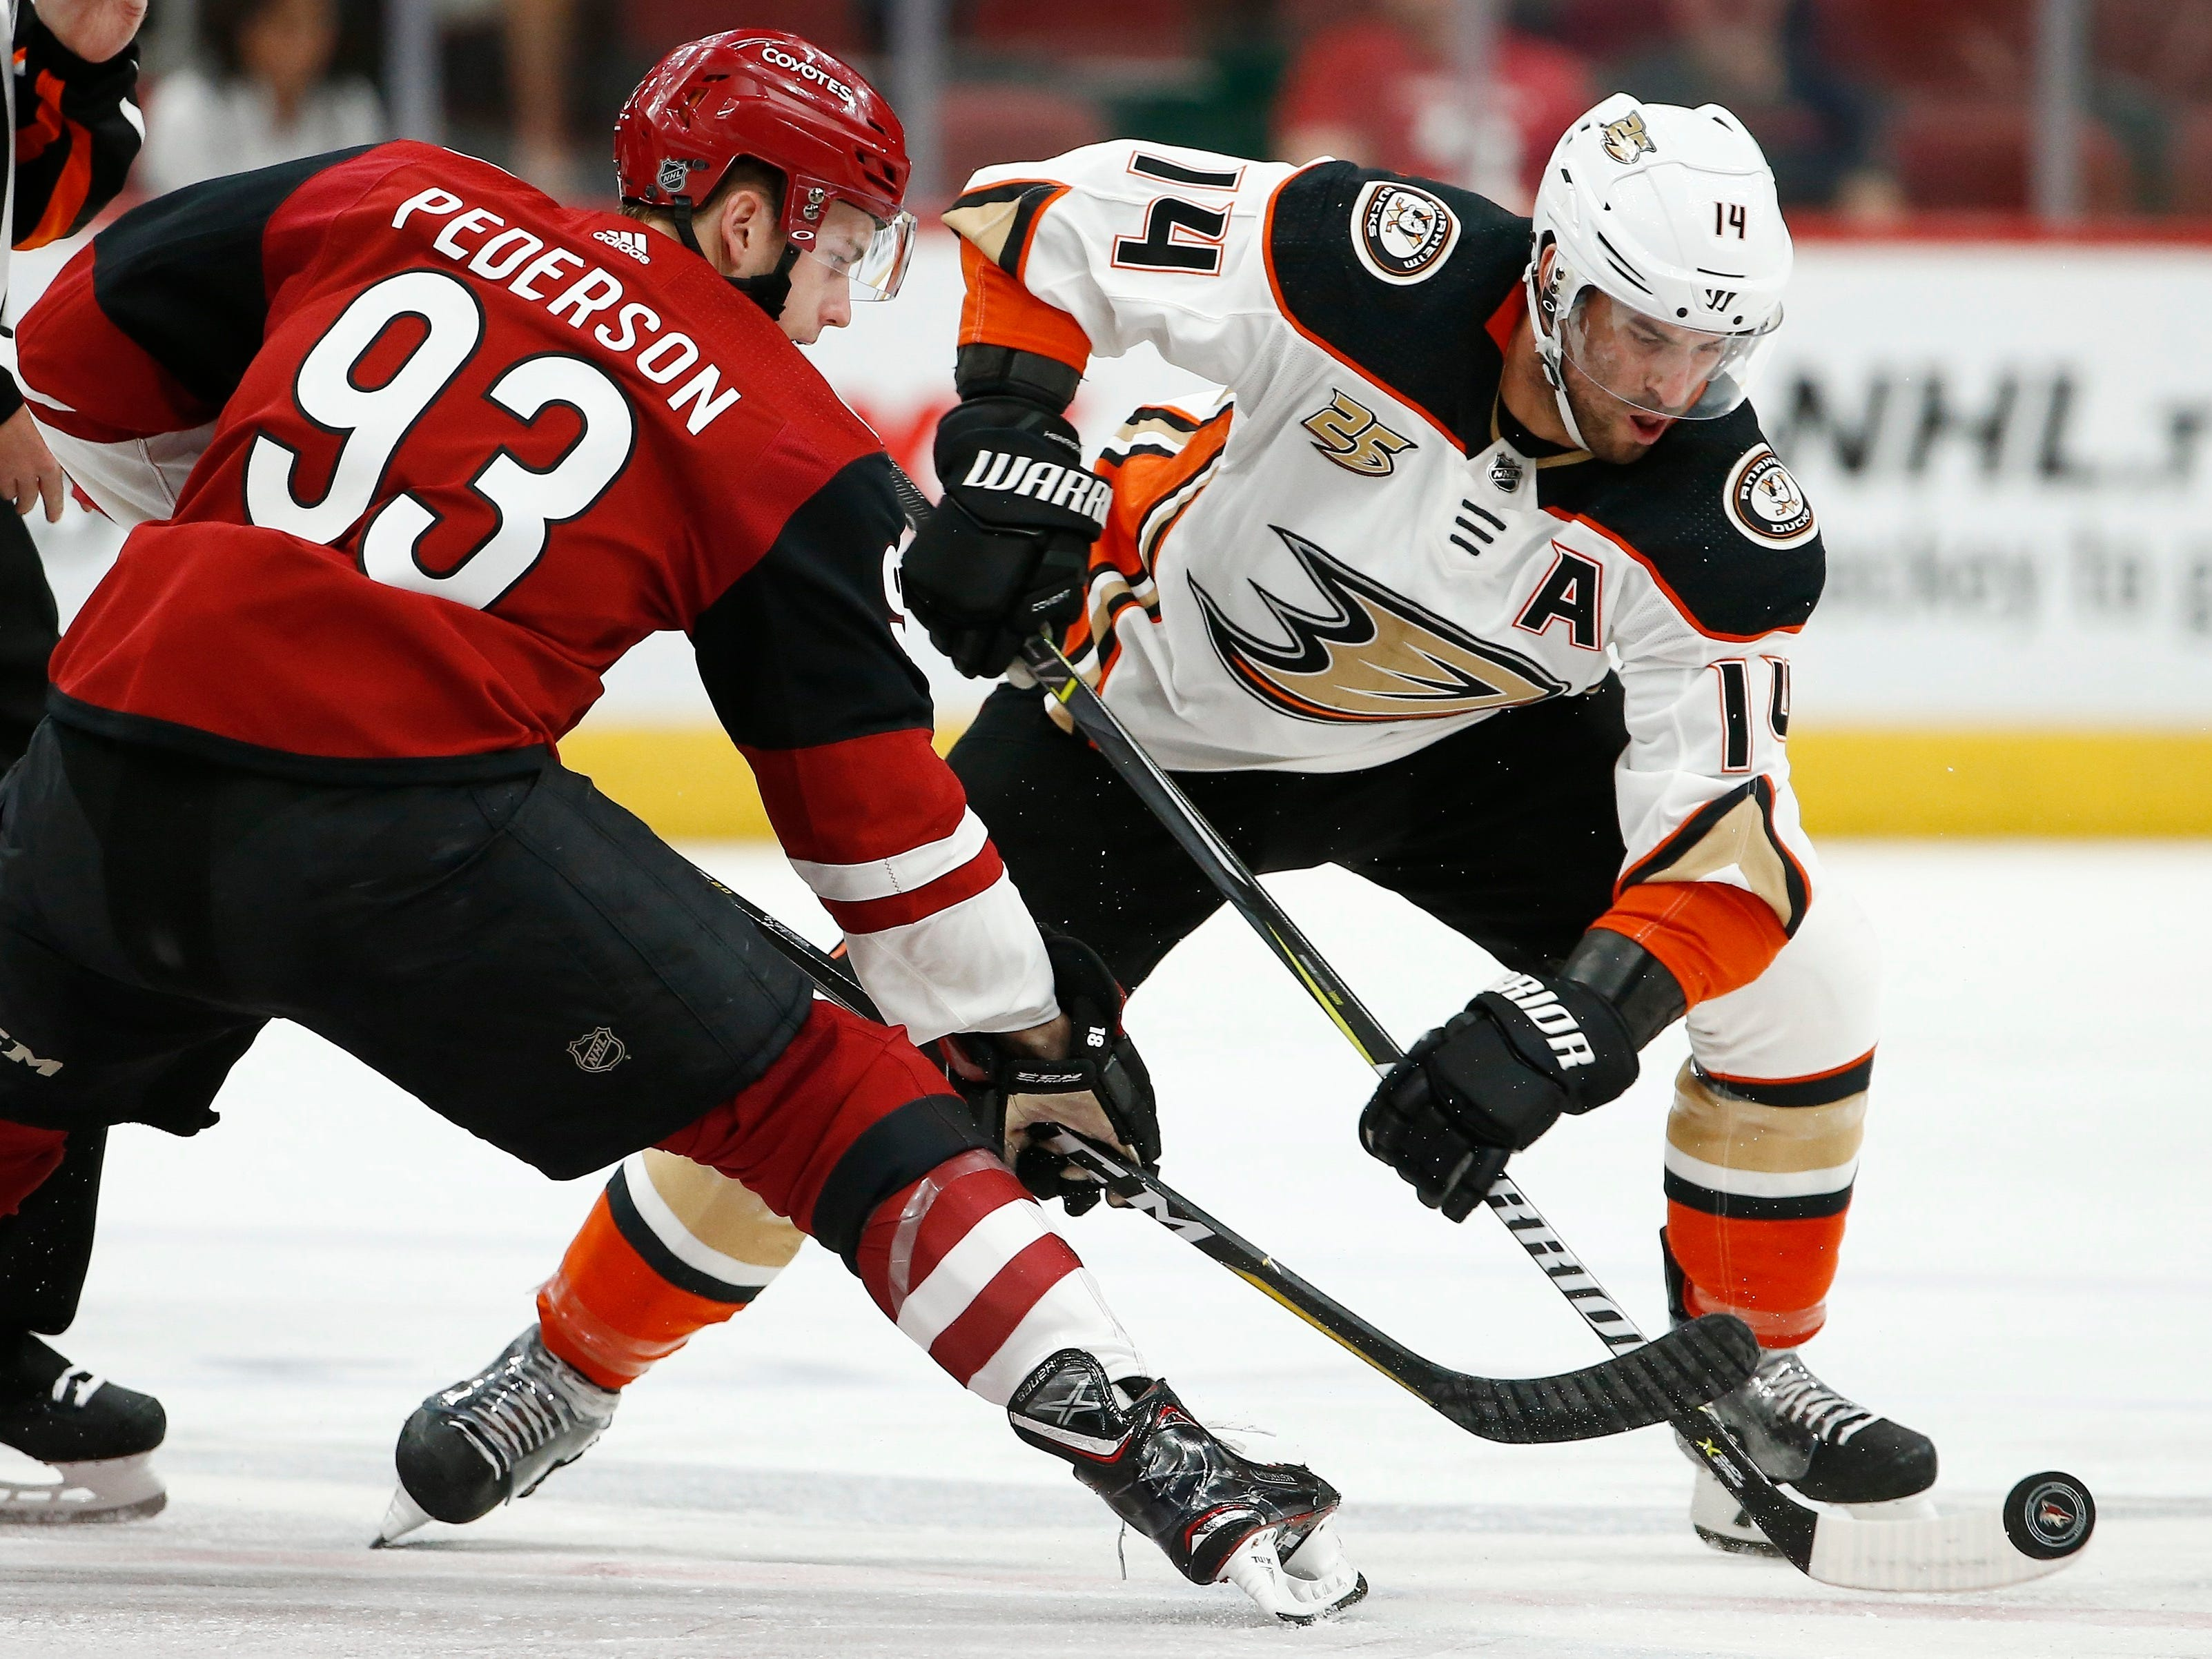 Anaheim Ducks center Adam Henrique (14) beats Arizona Coyotes center Lane Pederson (93) to the puck during the first period of an NHL preseason hockey game Saturday, Sept. 22, 2018, in Glendale, Ariz.